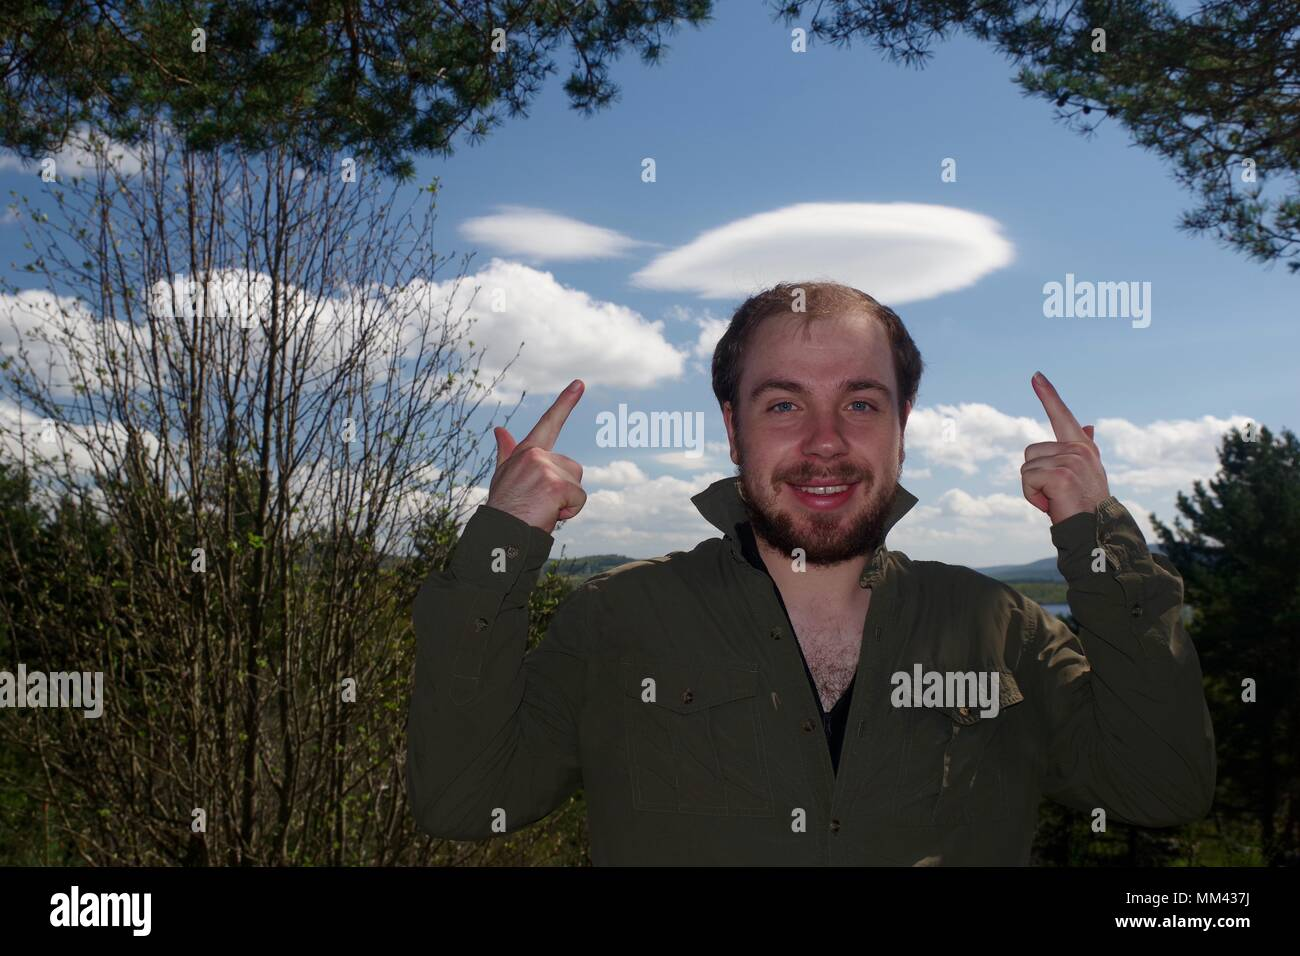 Caucasian Male Adventurer Poses Happily Under Cloud Formation as a Hat. Muir of Dinnet, NNR, Cairngorms, Scotland, UK. May, 2018. - Stock Image